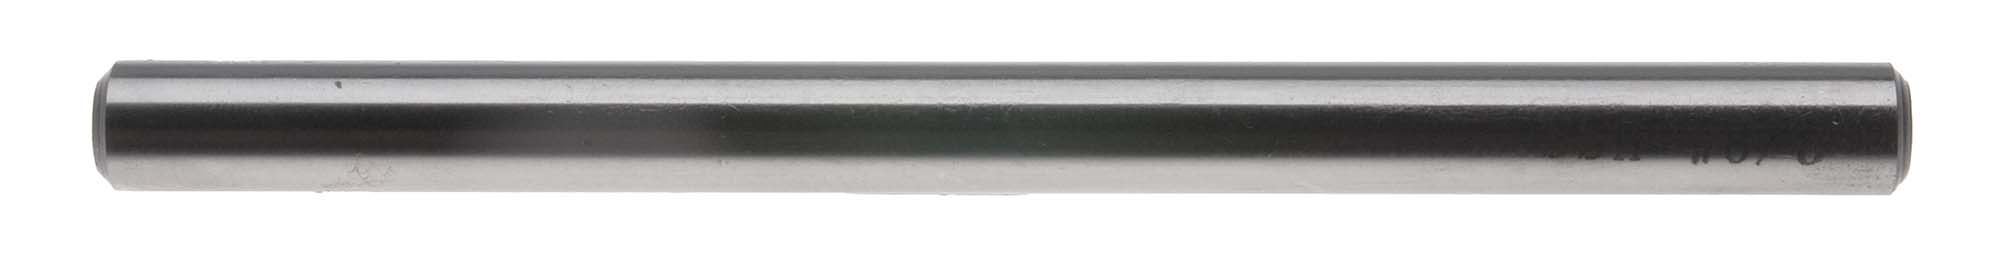 "#65 (.0350"") Jobber Length Drill Blank , High Speed Steel"